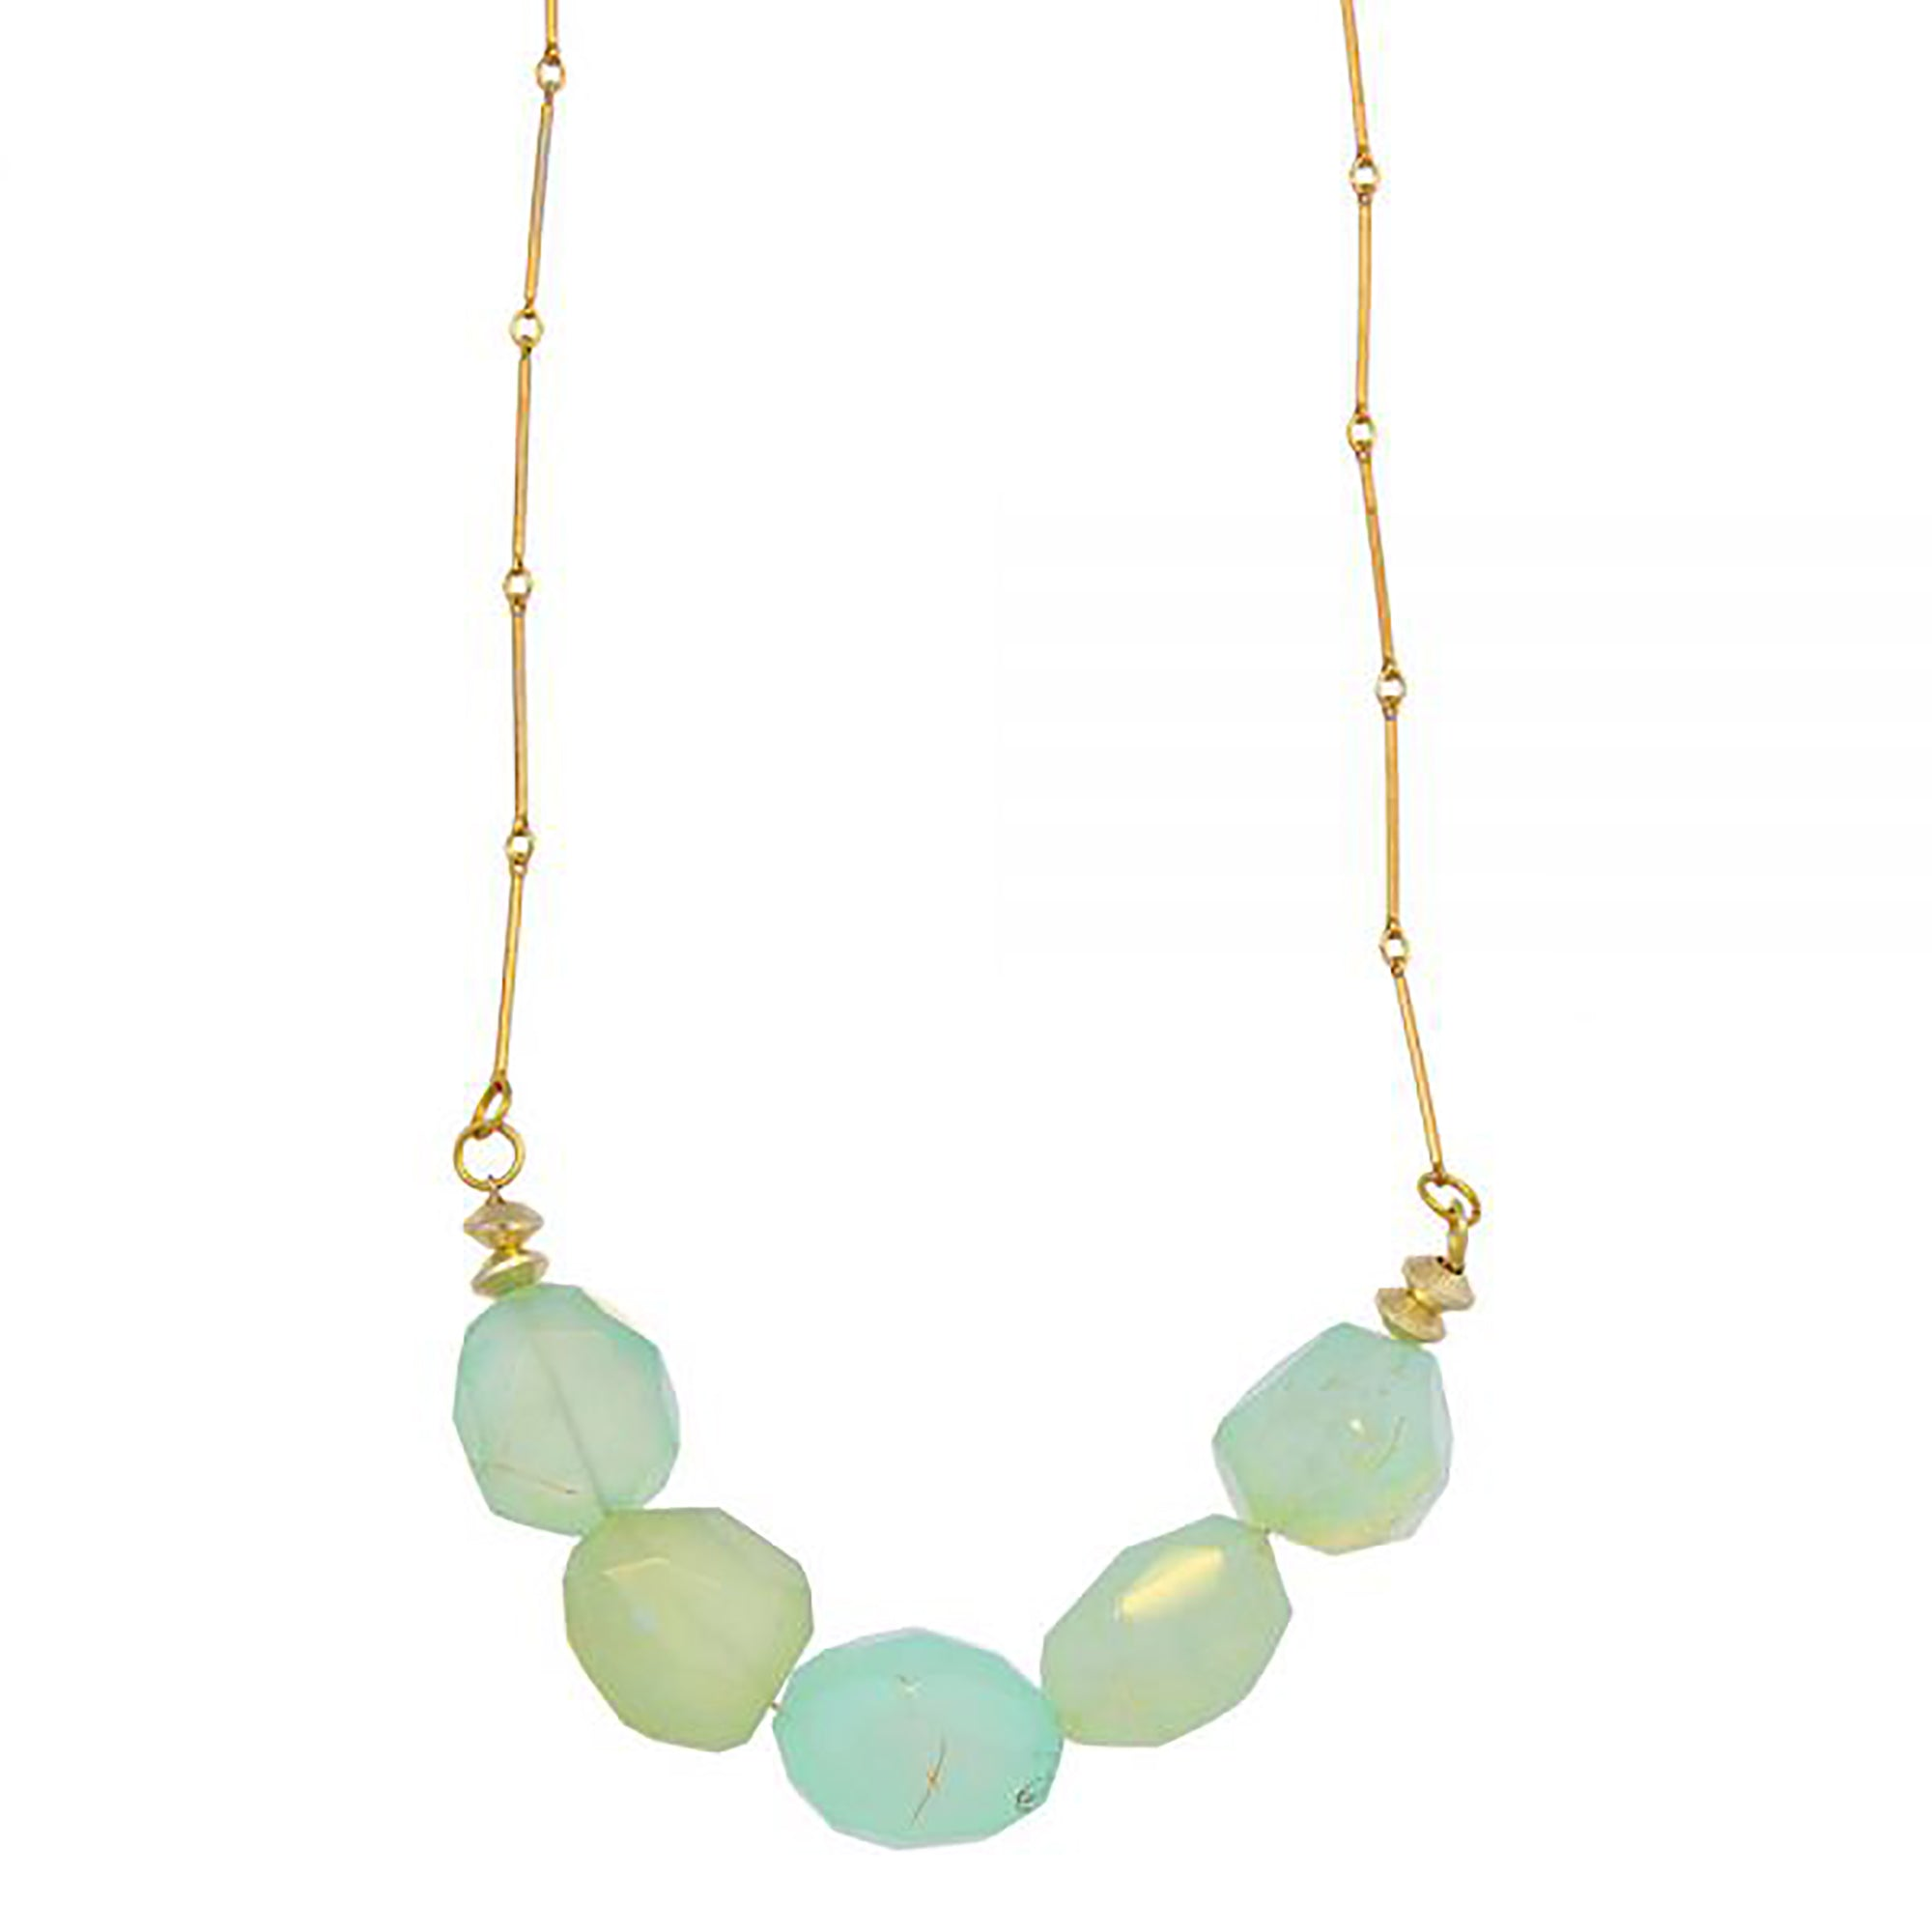 Necklace with Agate Beads | Getty Store